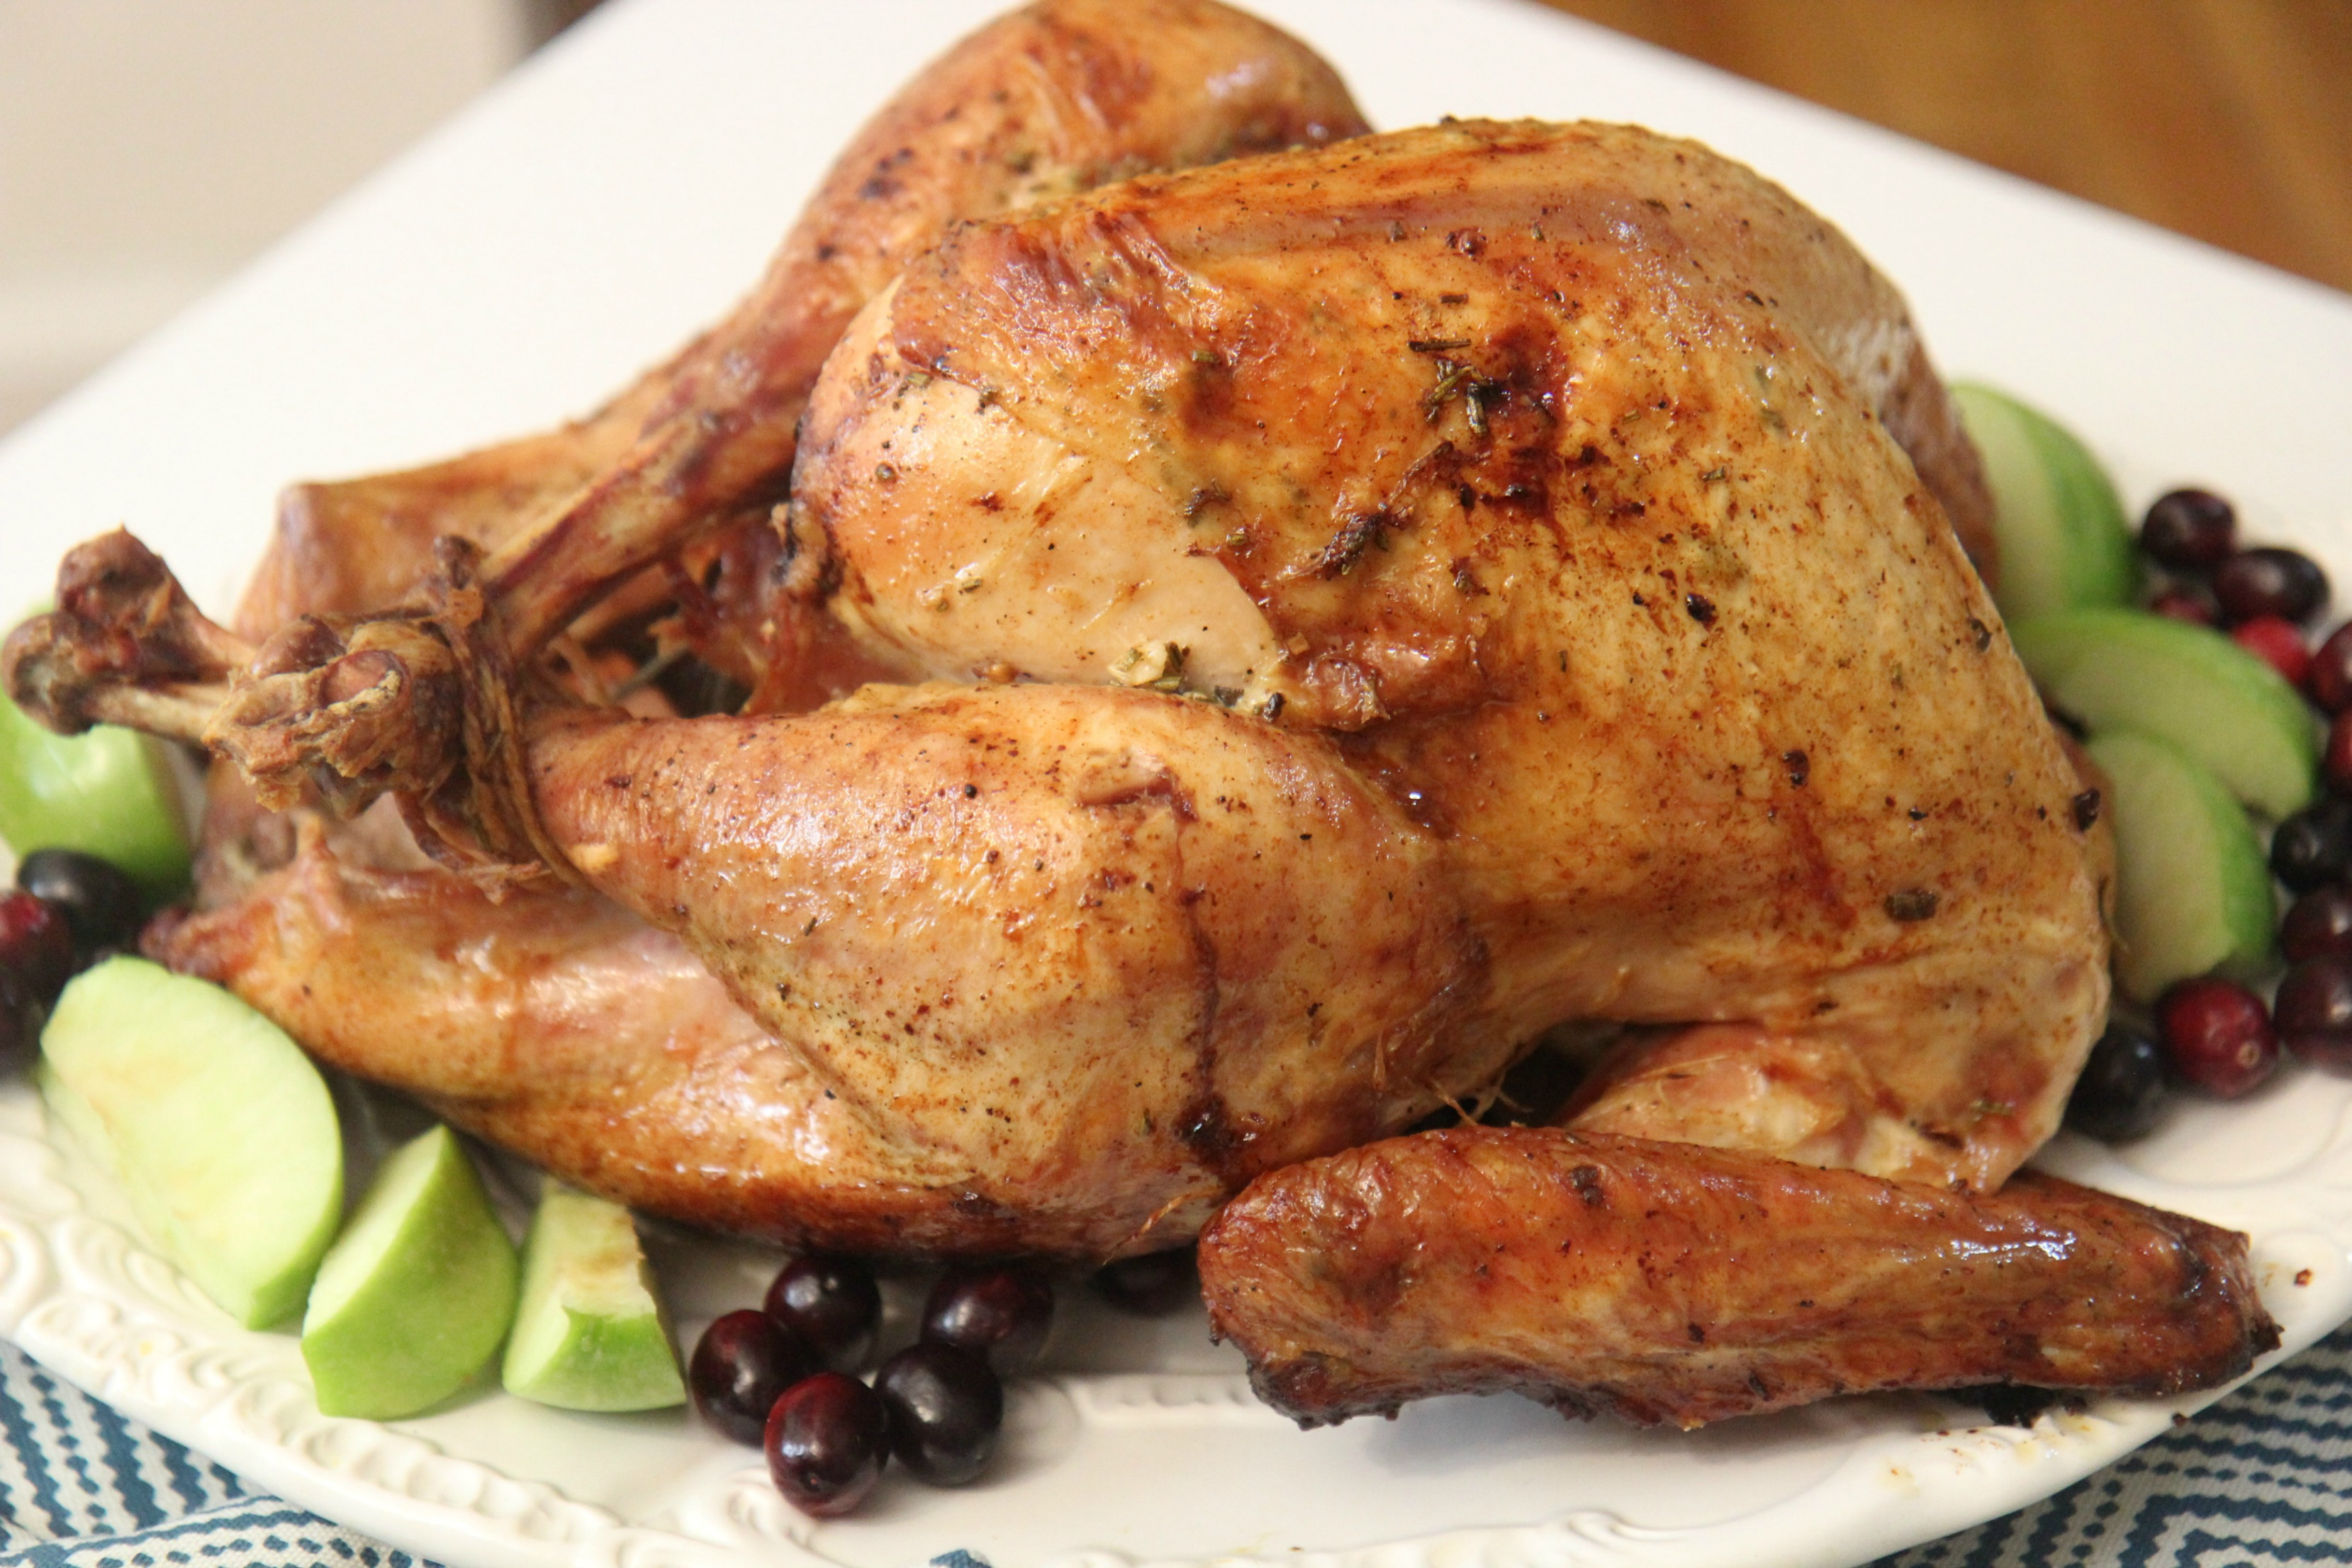 Crisp skin and tender, juicy meat makes this roaster turkey recipe the perfect Thanksgiving dinner.